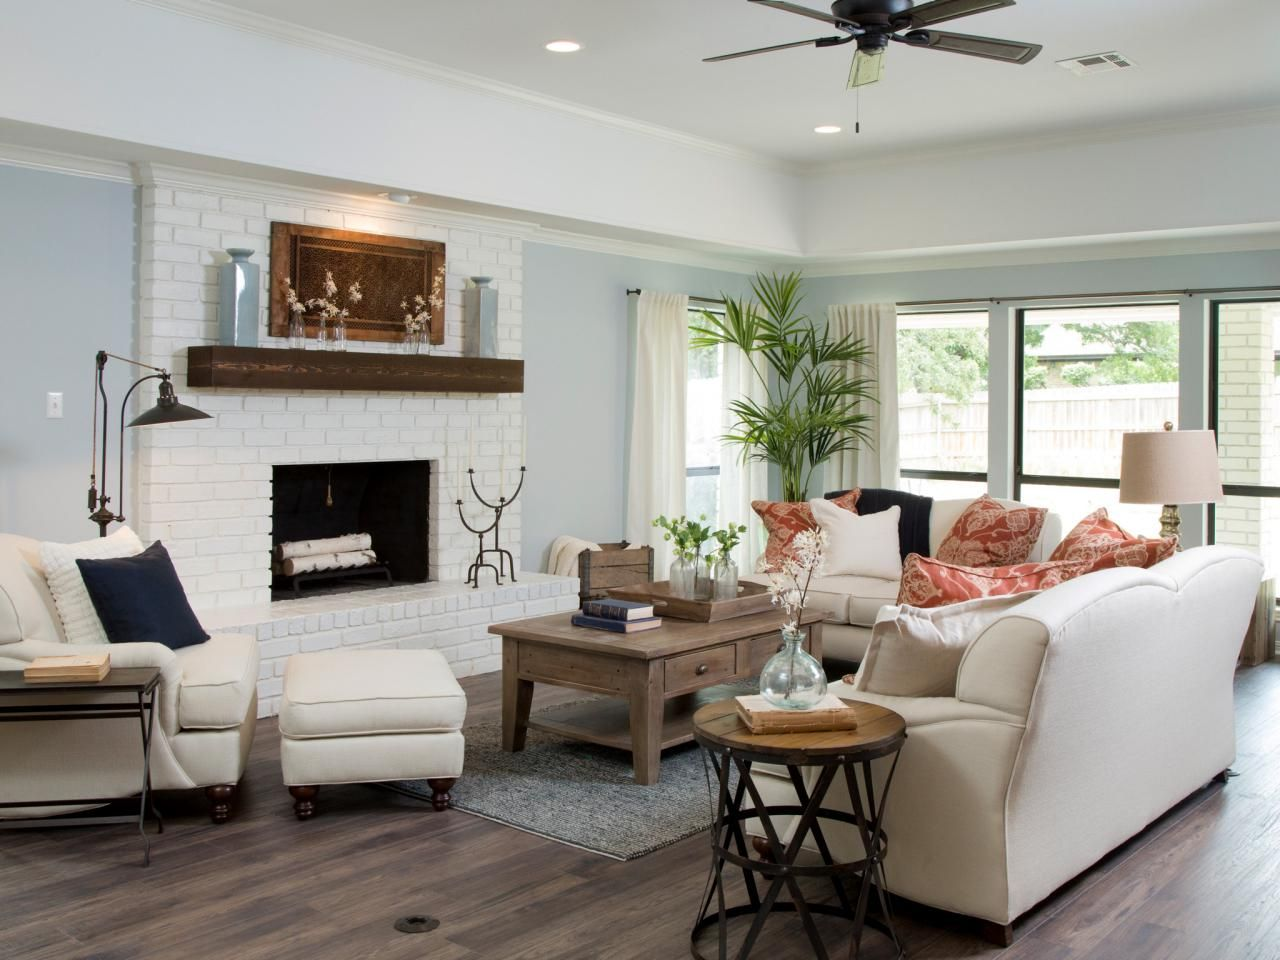 New Dark Wood Flooring Replaces The Worn Carpet Walls Are Painted In A Tranquil Blue And Ceiling Fireplace Bright White